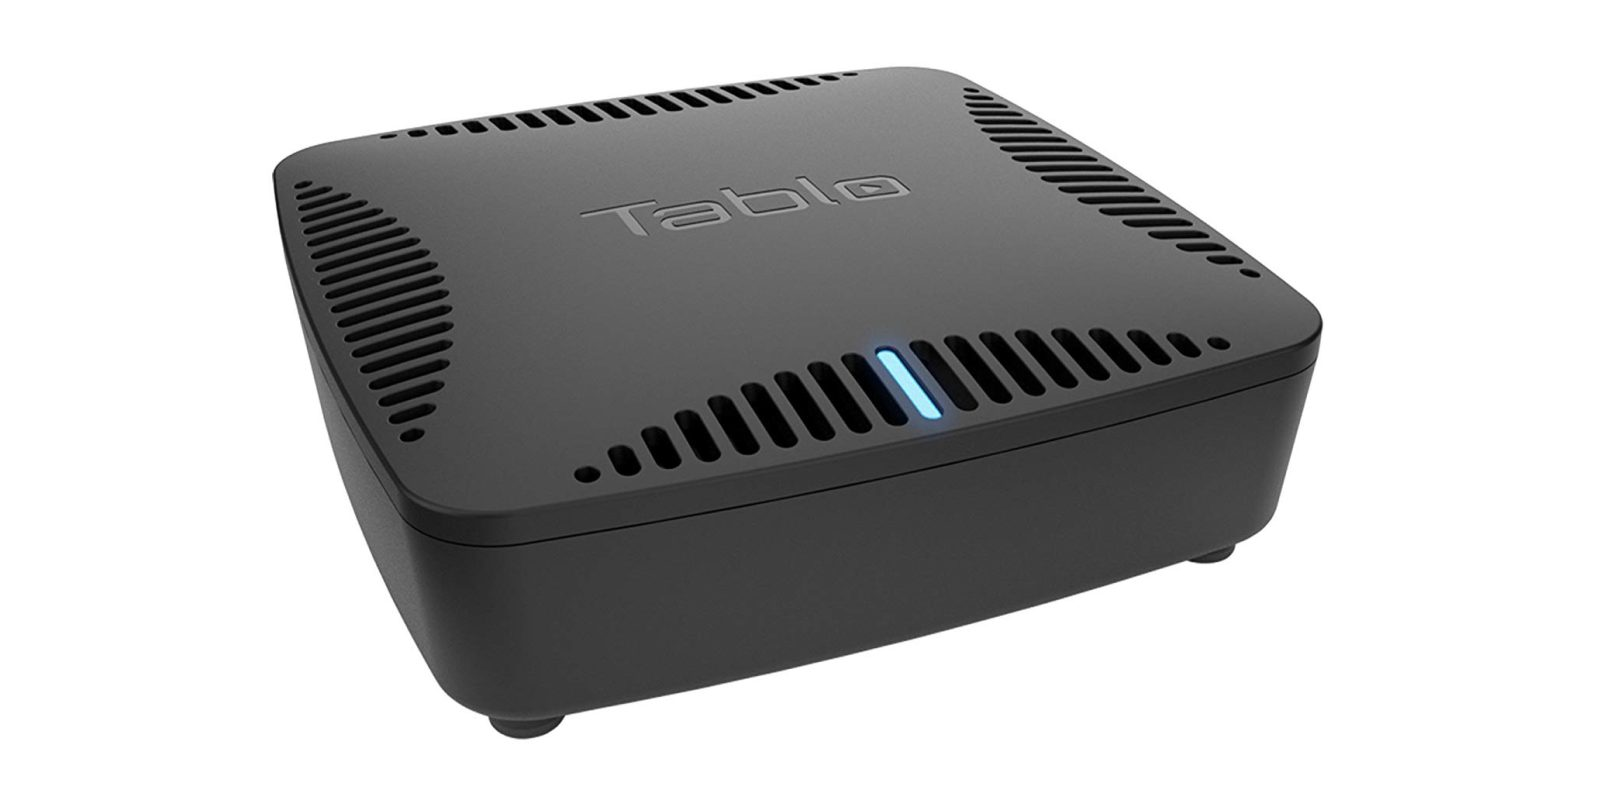 Tablo Dual LITE OTA DVR delivers cord-cutting functionality to your Apple TV for $100